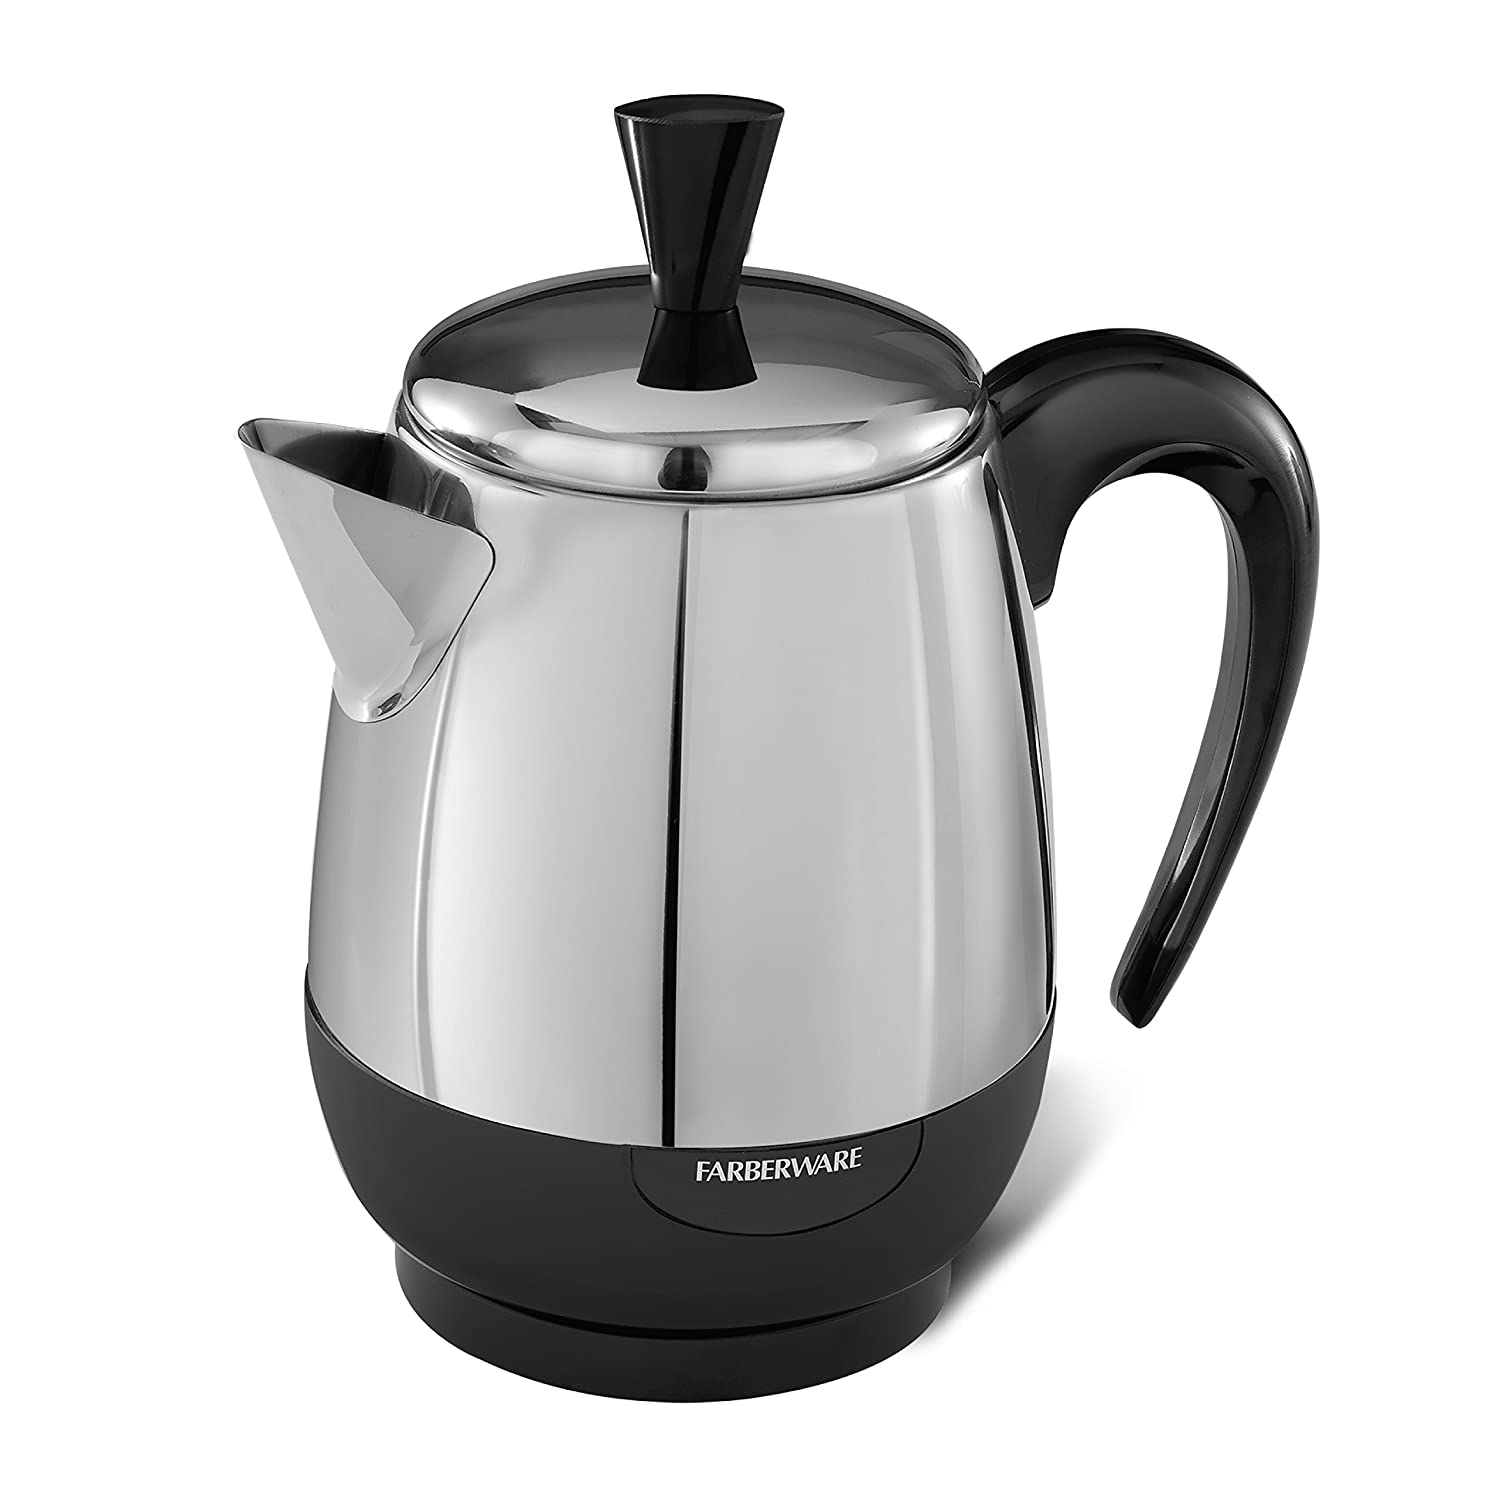 Farberware FCP240 Cup Percolator